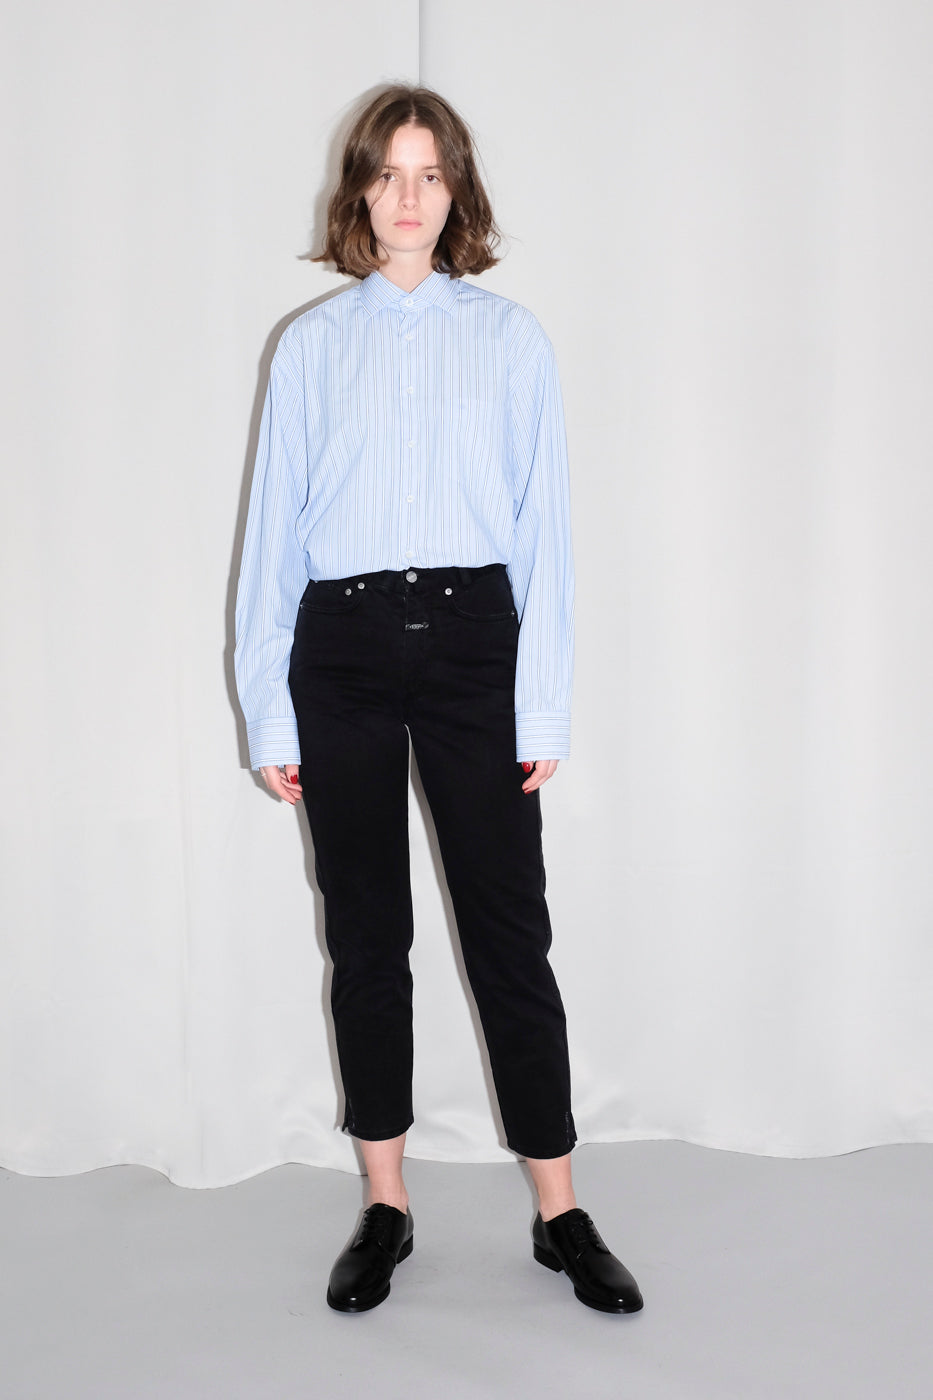 0130_CLOSED CROP BLACK JEANS